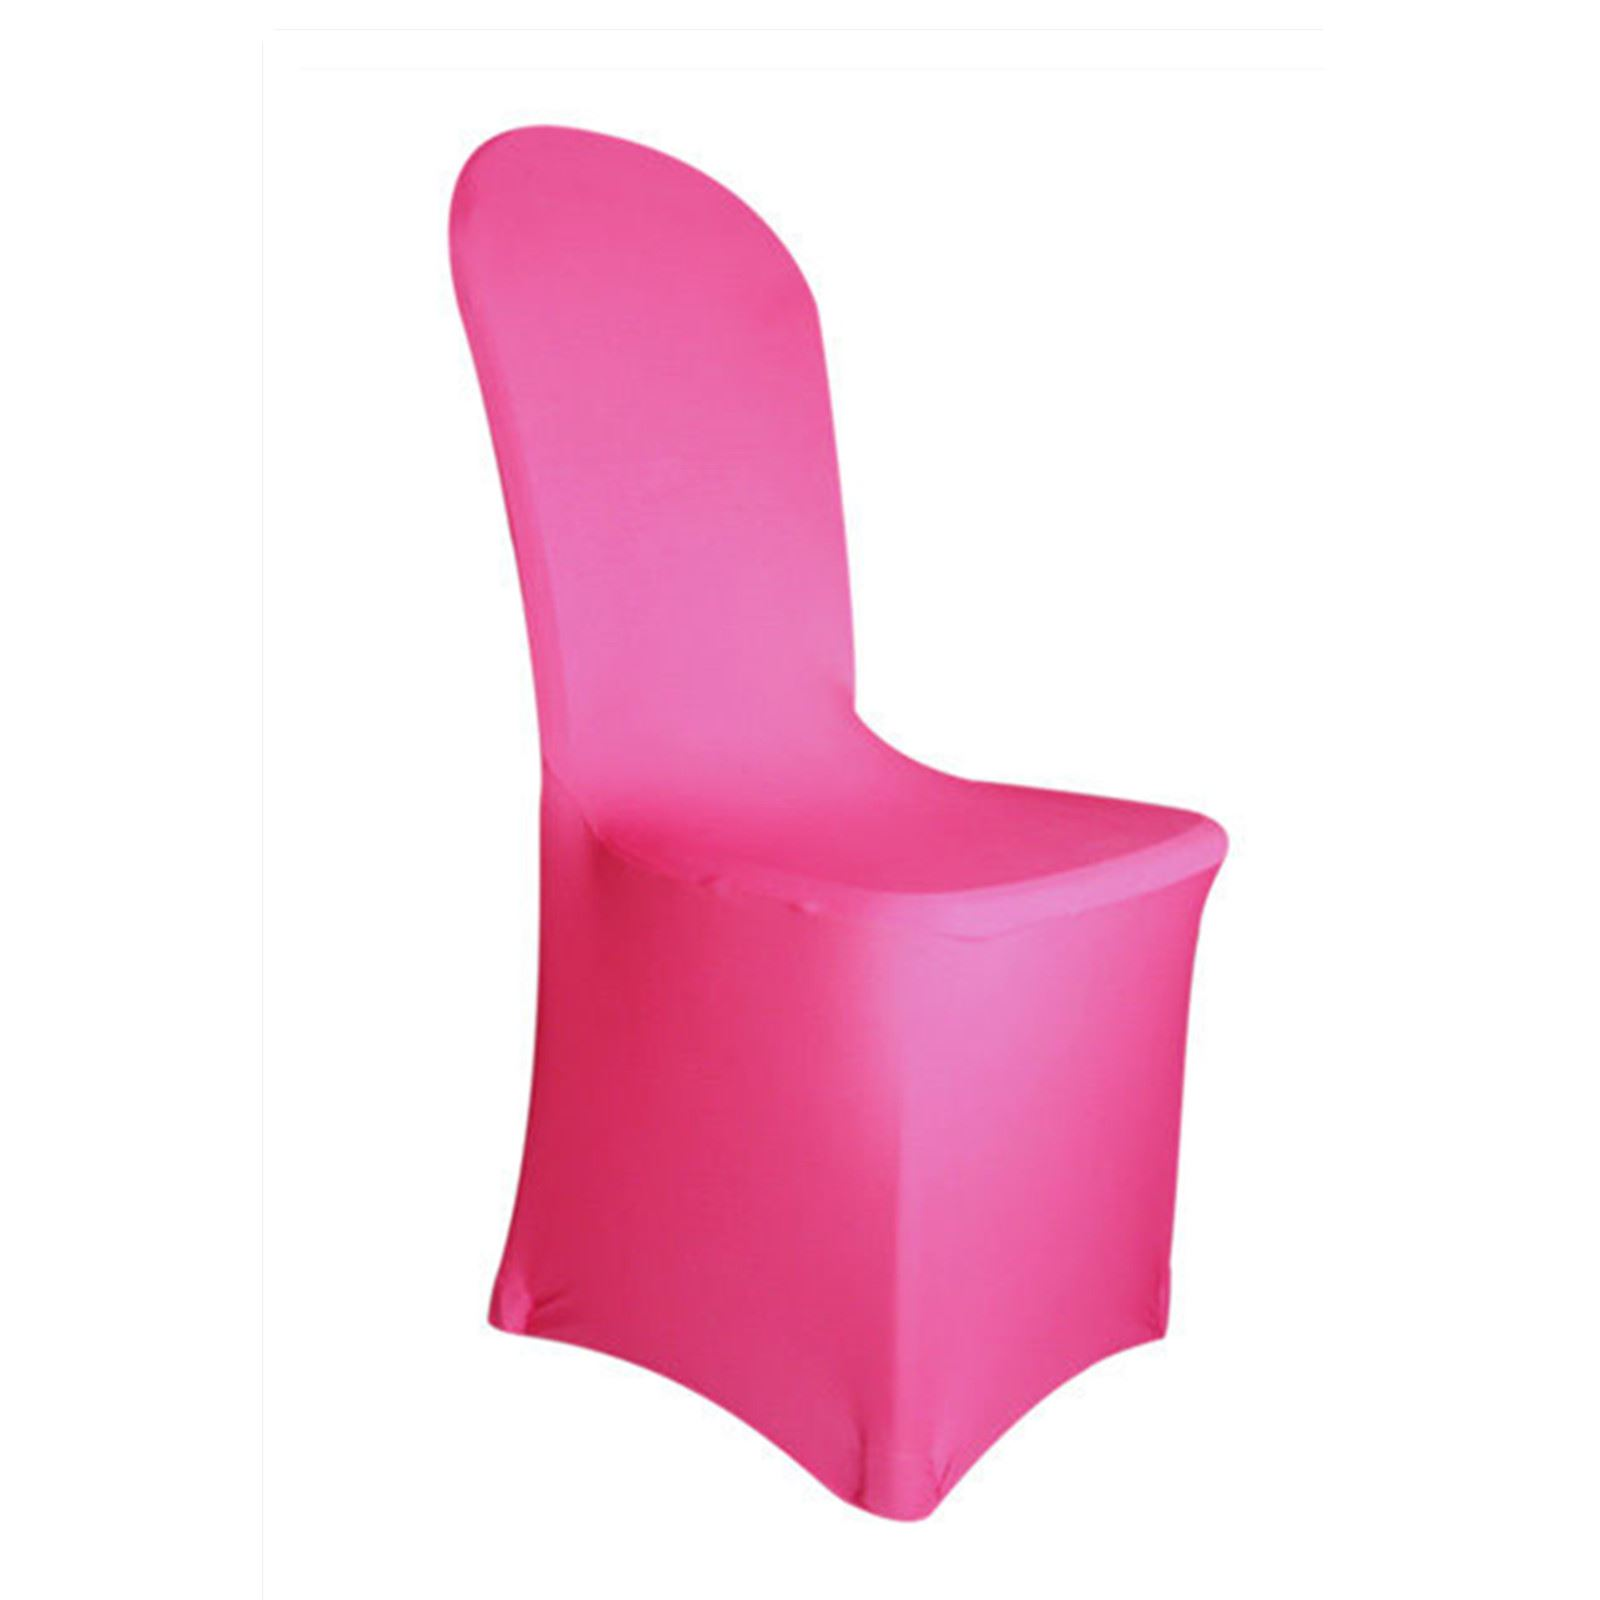 spandex lycra chair cover for wedding party leather office chairs johannesburg 12 colours covers